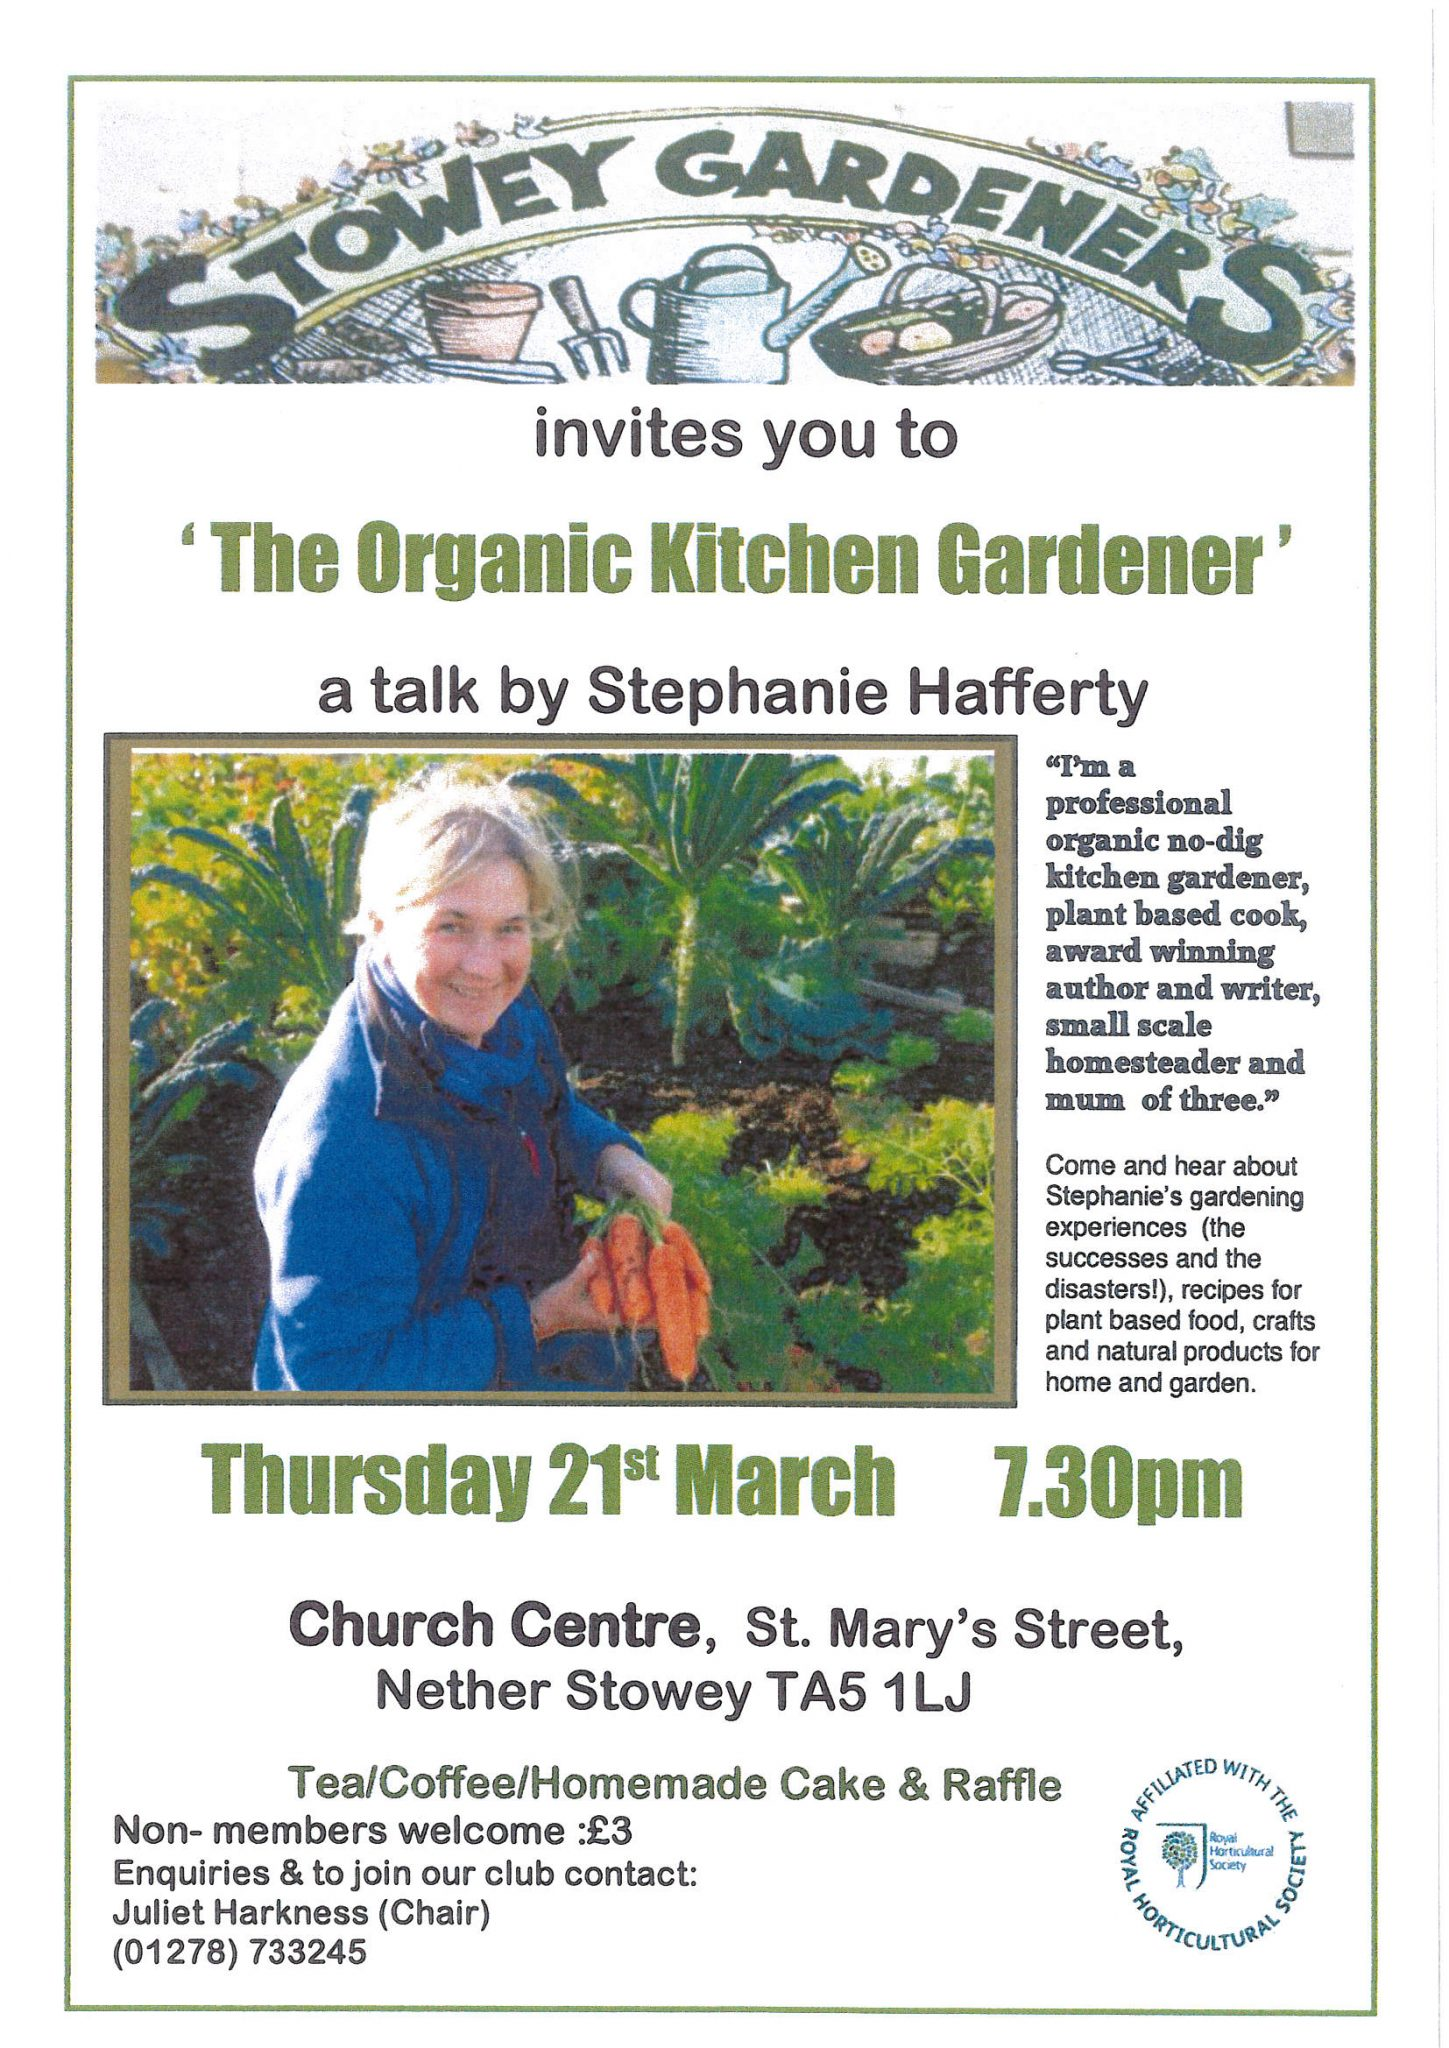 Stowey Gardeners invites you to 'The Organic Kitchen Gardener' a talk by Stephanie Hafferty @ Church Centre St Mary's Street